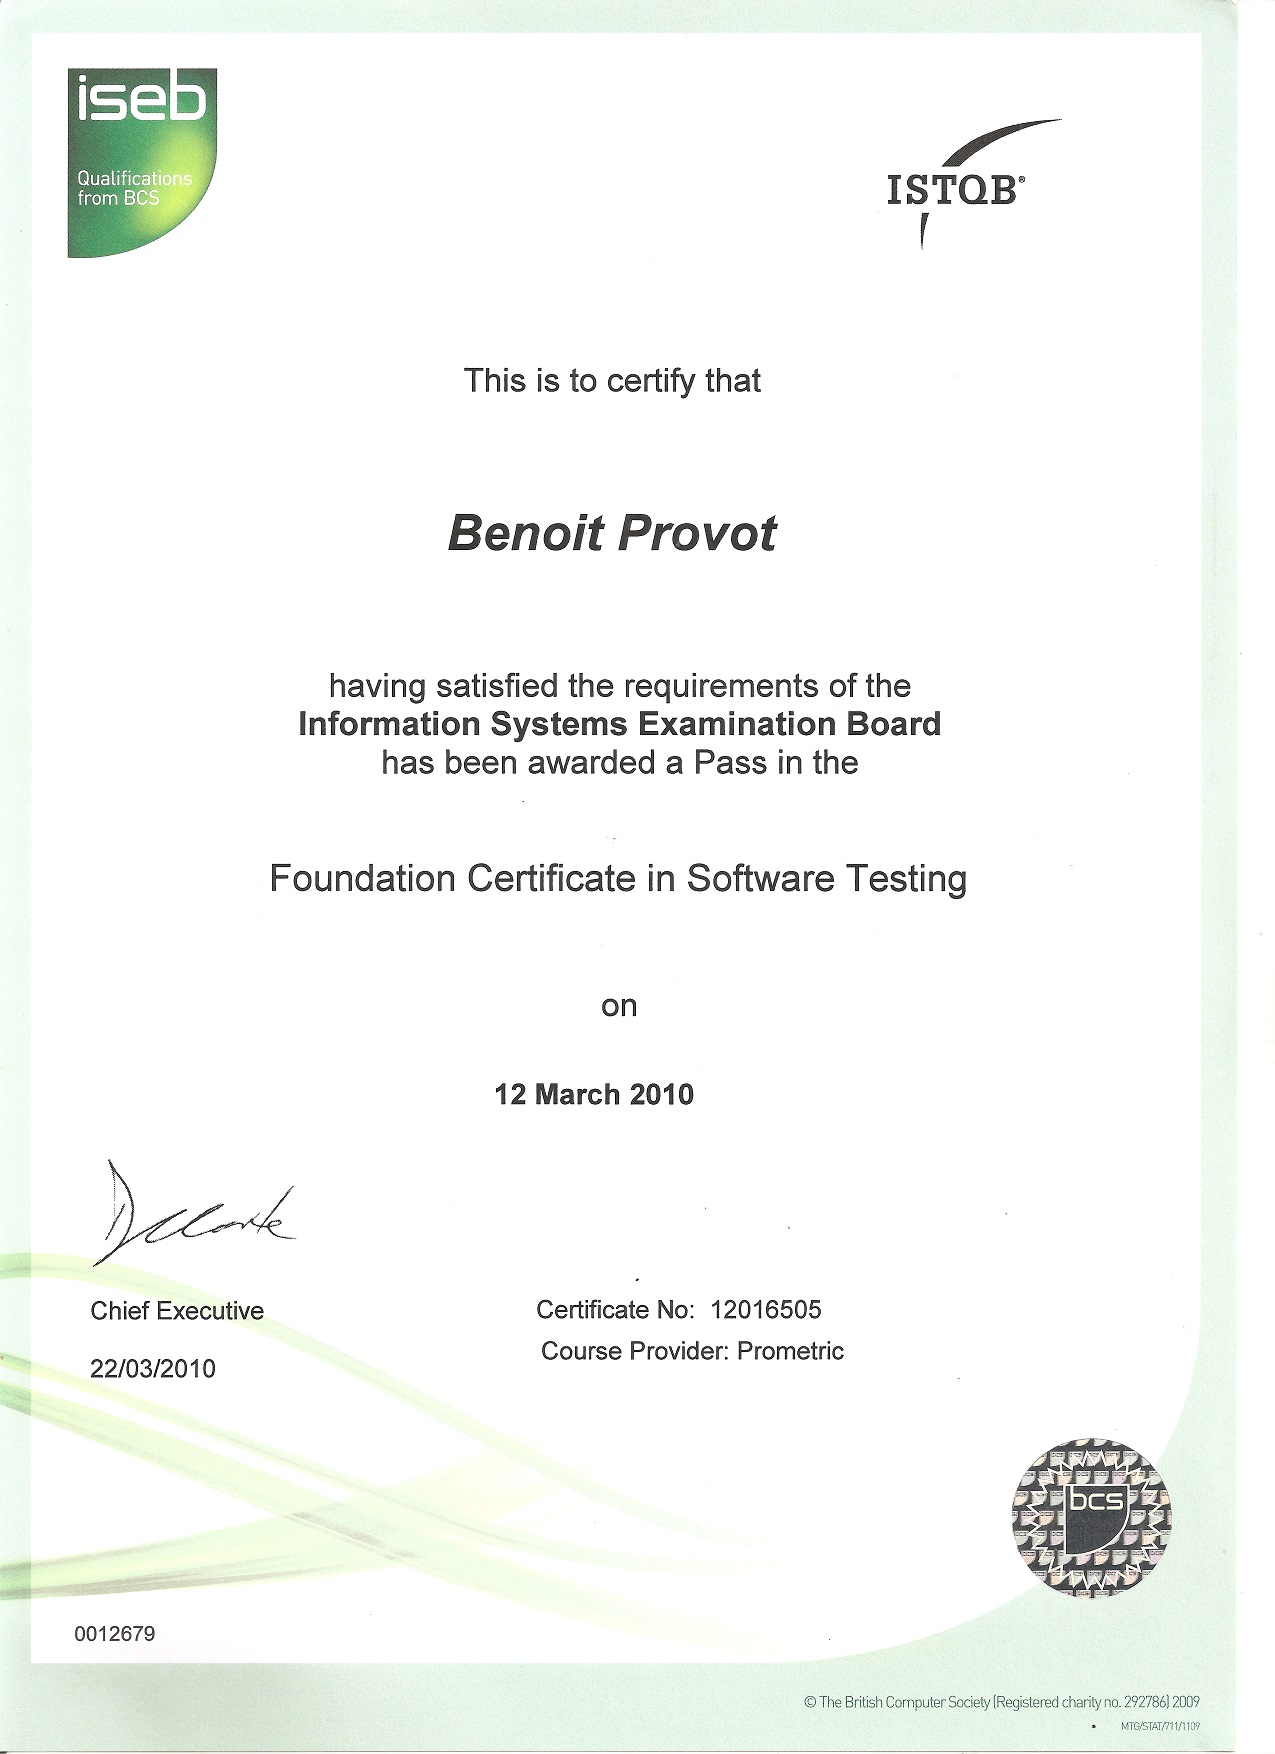 istqb certified tester resume logo verity software astqb how significant do you think the training was in your certification success